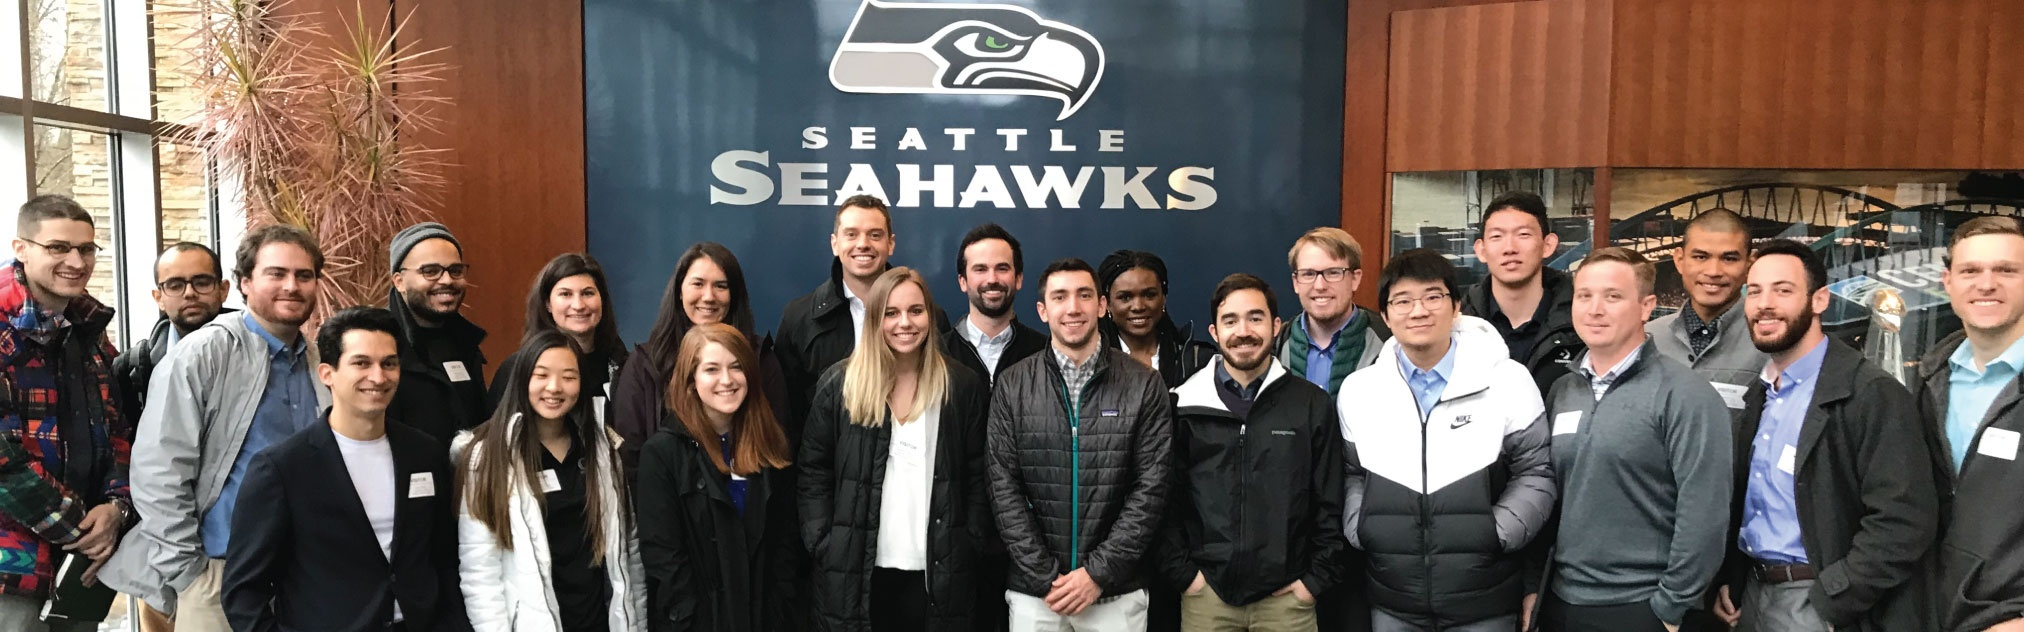 MBA students take a group photo in front of the Seattle Seahawks logo